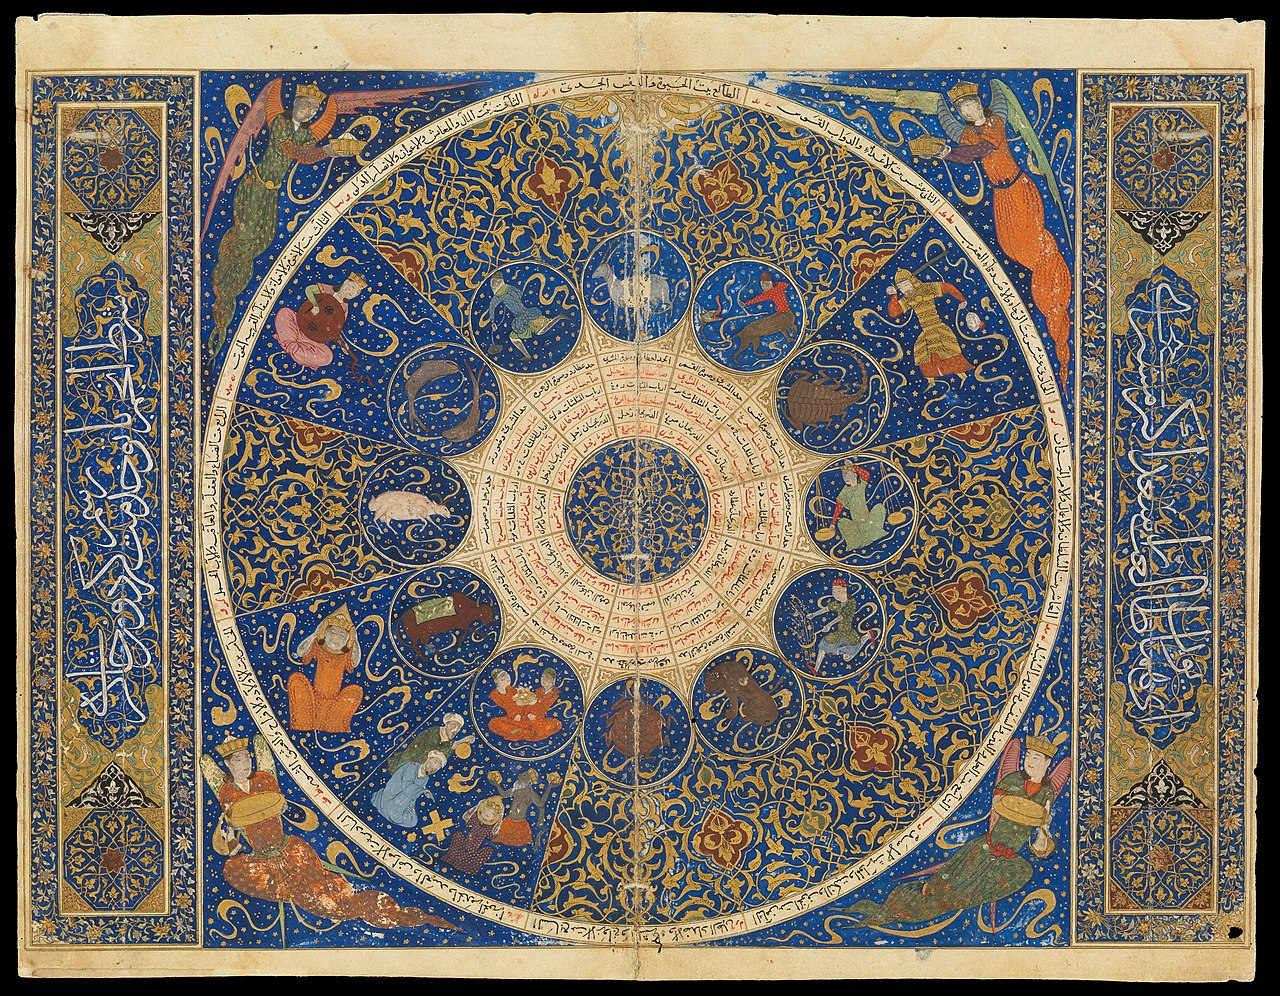 Zodiac Sign Birth Chart: Horoscope from the book of the birth of Iskandar Wellcome ,Chart